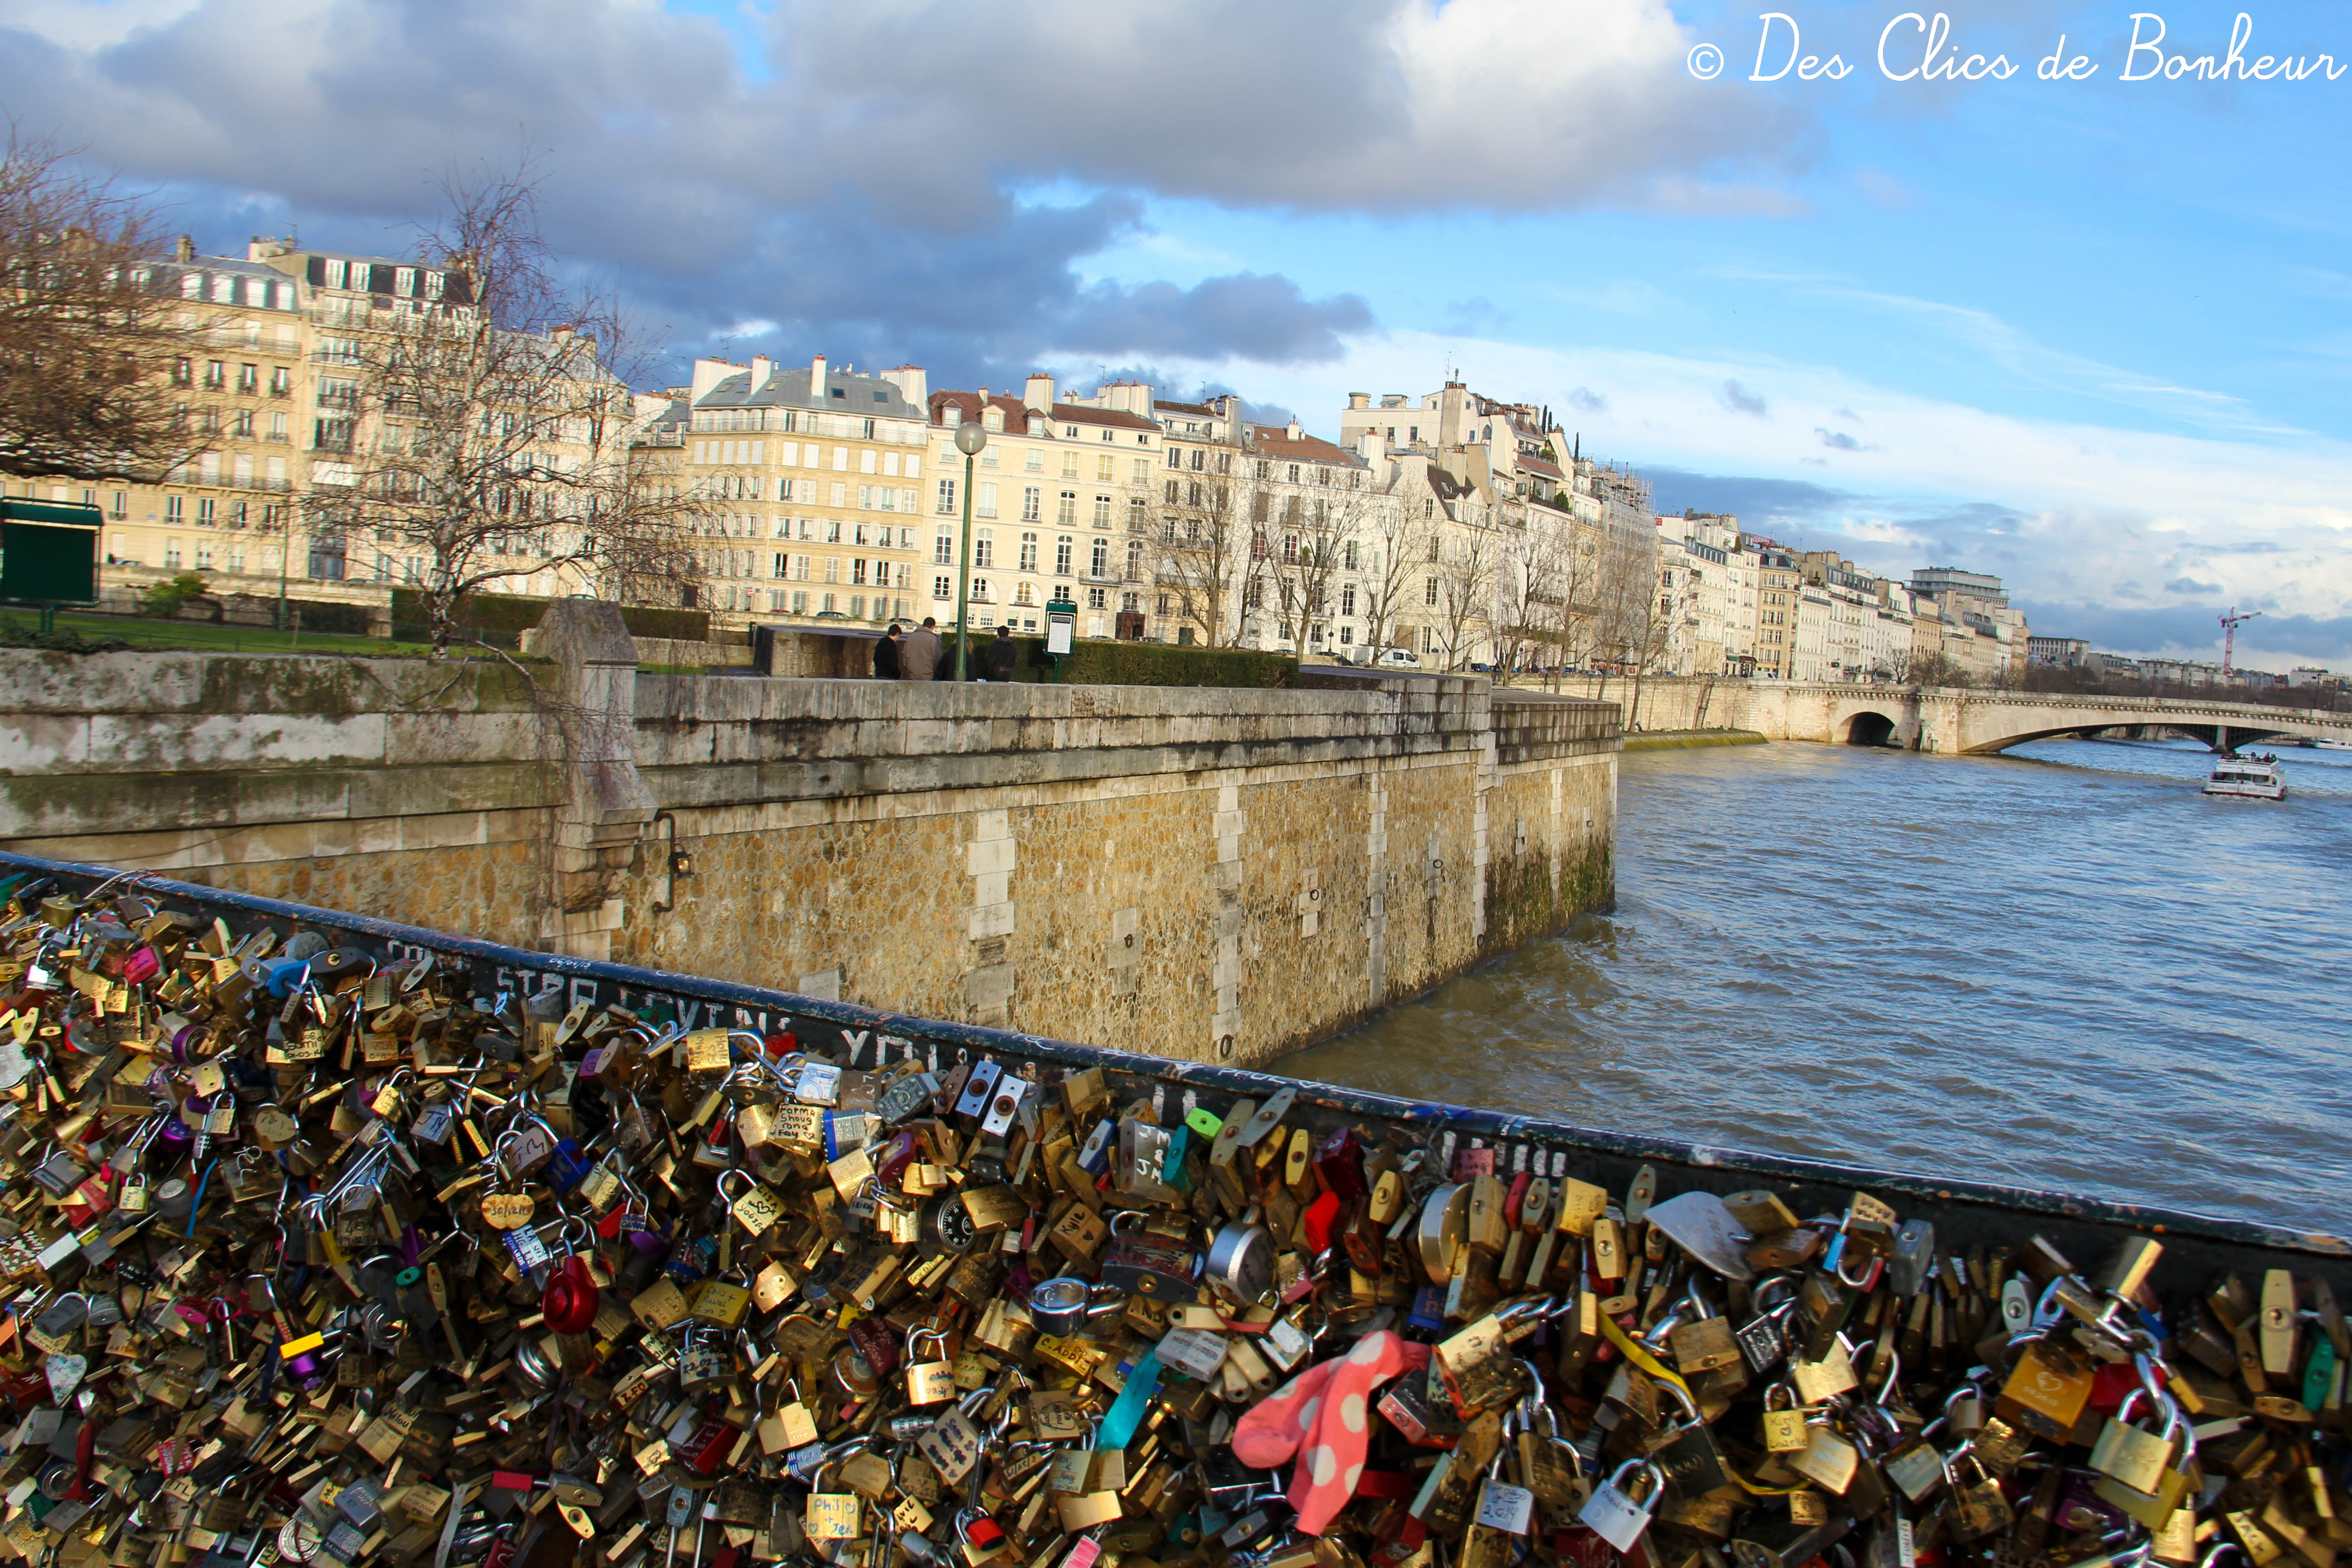 PONT DES ARTS / PARIS